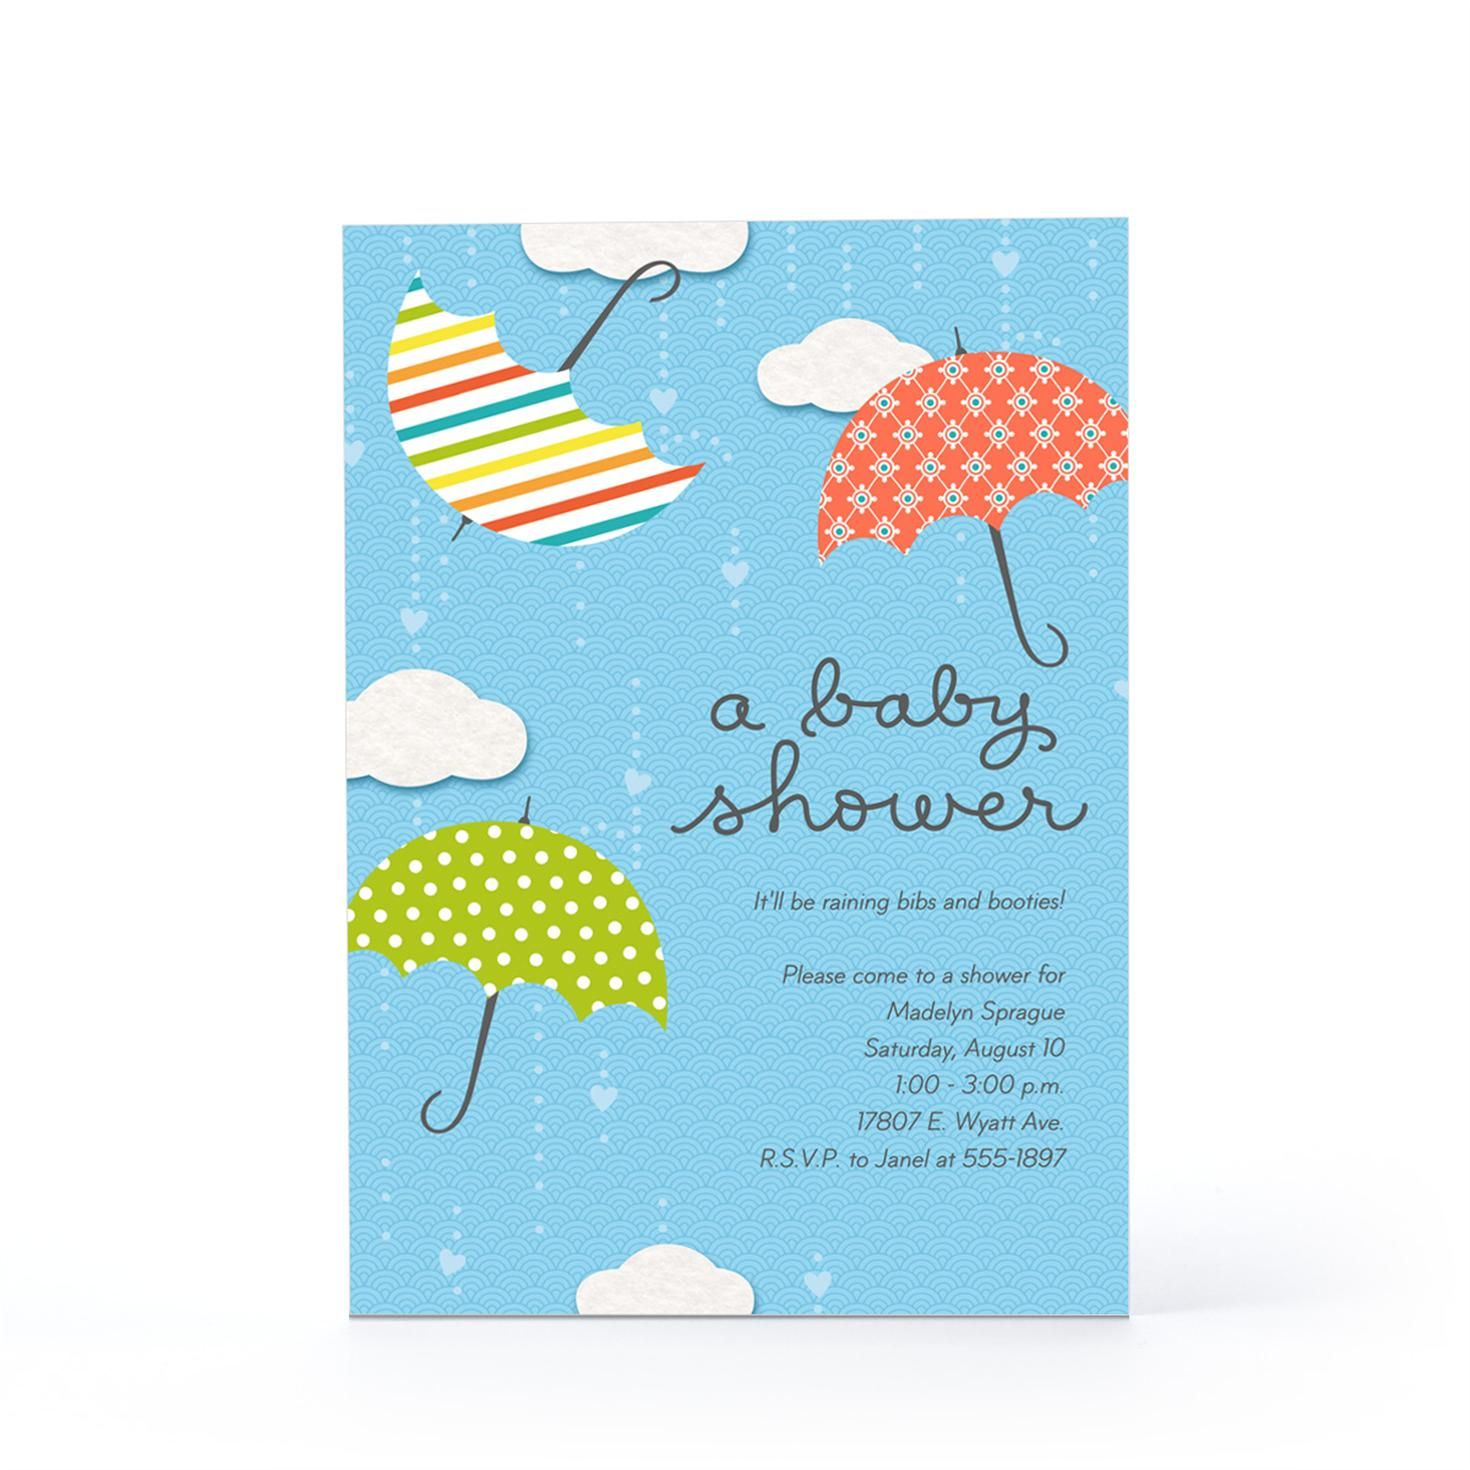 Baby shower umbrellas baby invitation hallmark baby shower baby shower umbrellas baby invitation hallmark filmwisefo